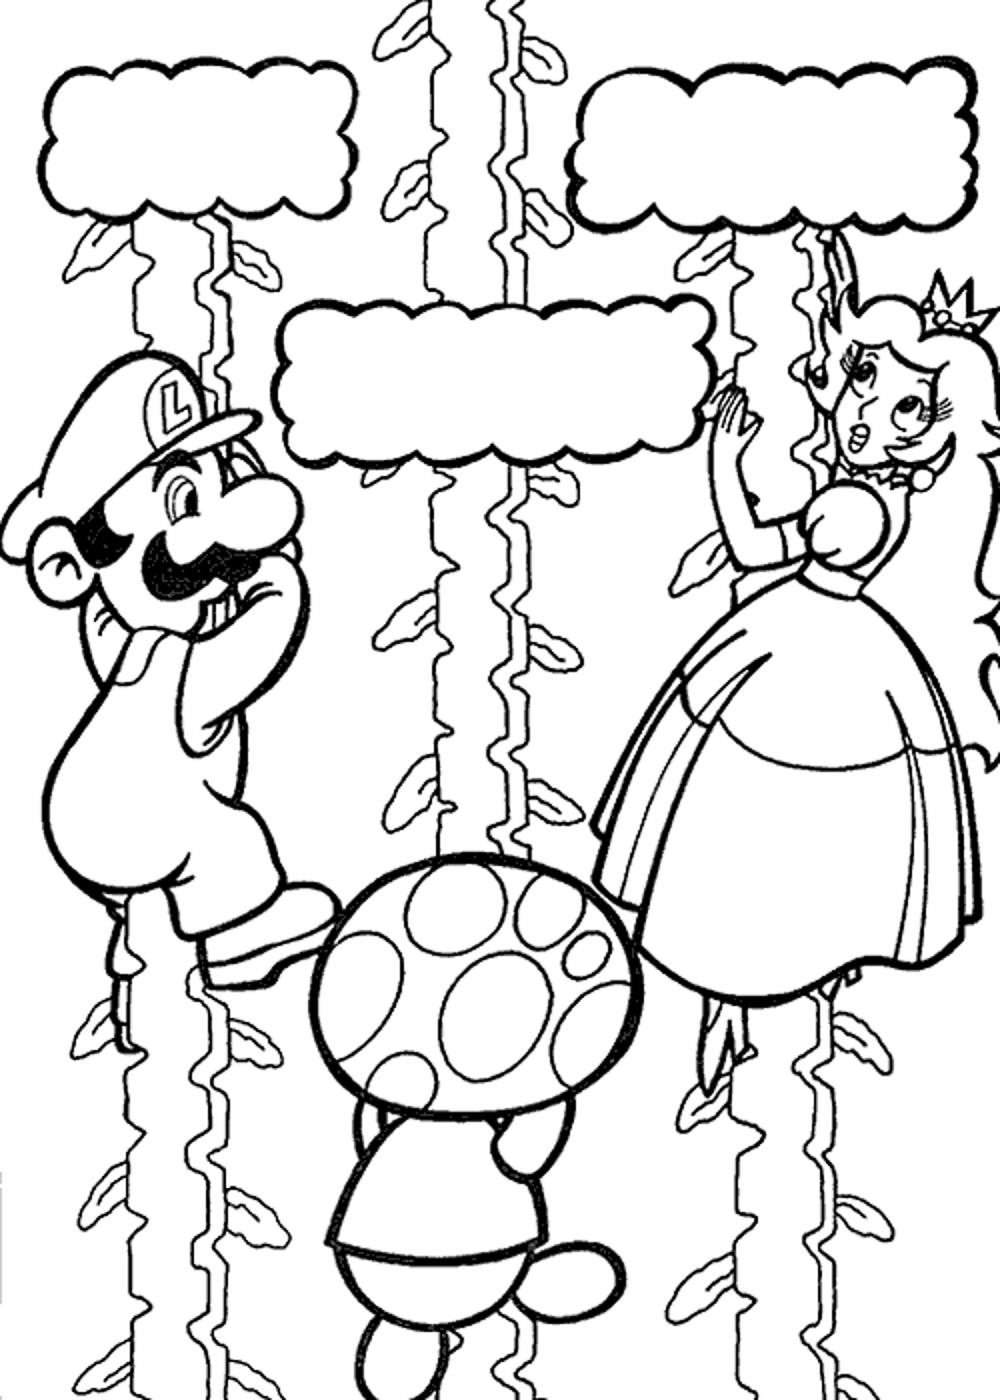 Super Mario Galaxy Coloring Pages Bestappsforkids